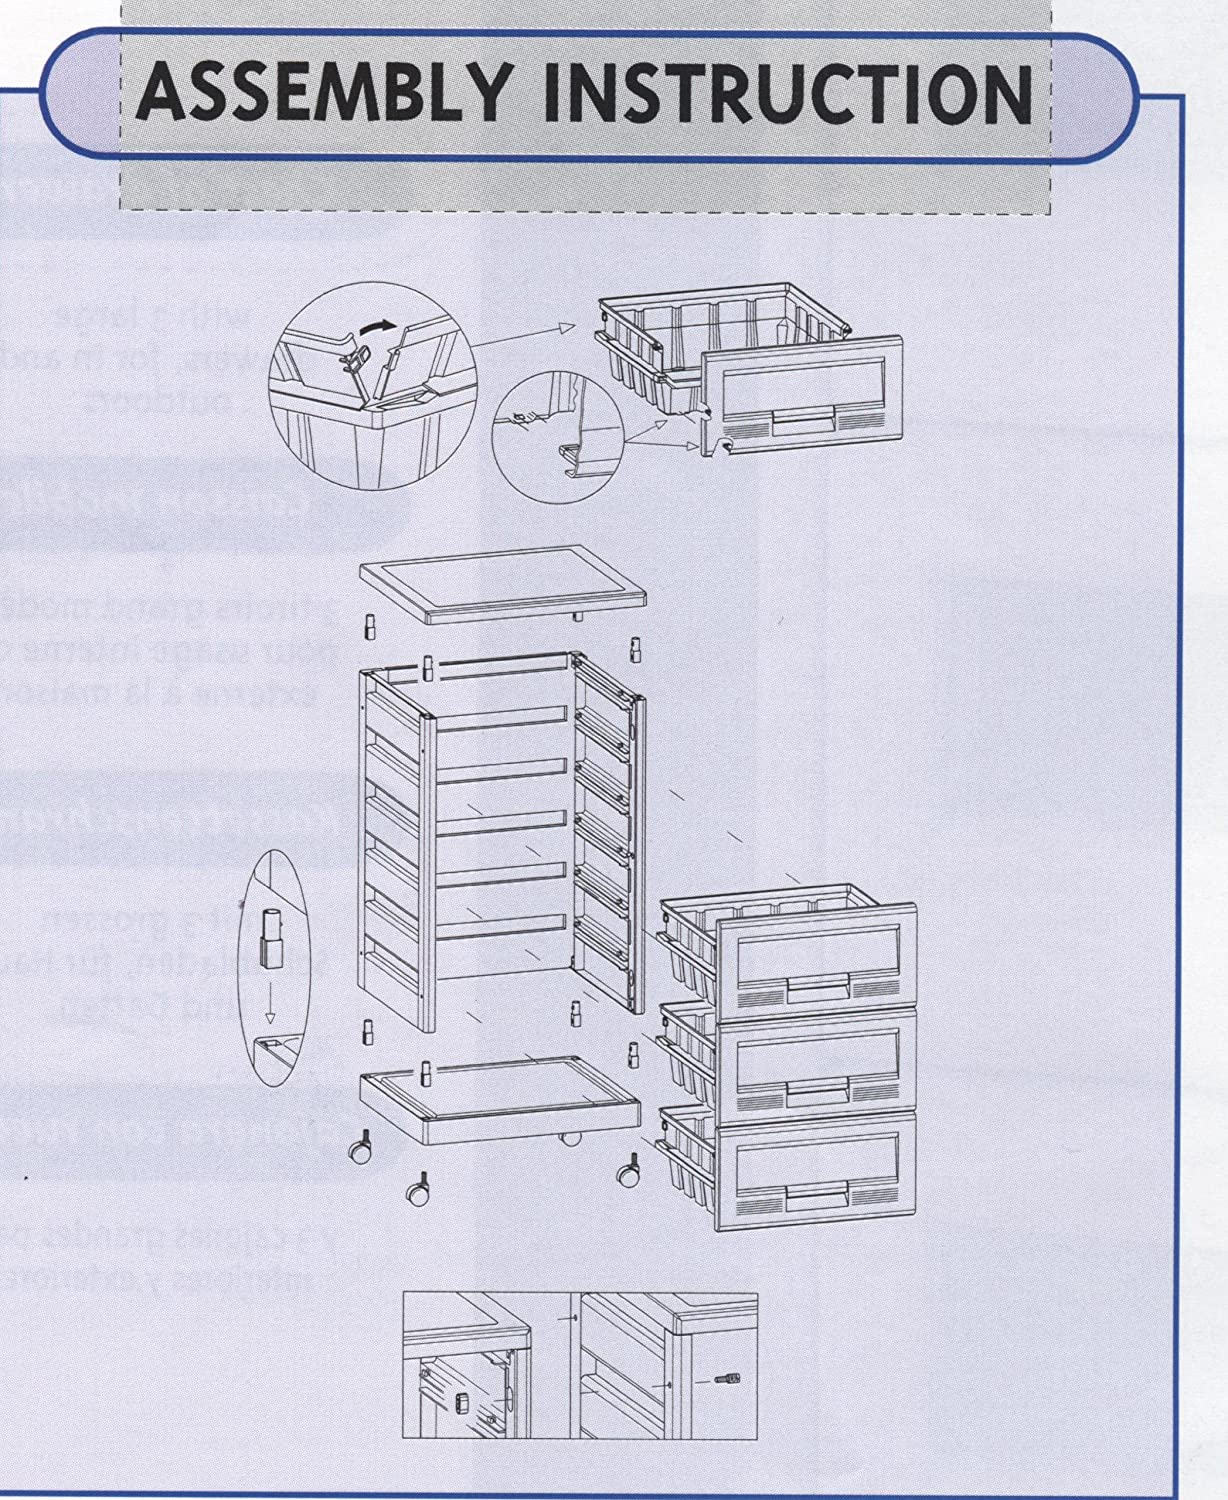 Amazon.com: 3 Drawer Storage And Organization Cabinet Or Cart, See Through  Drawers, Casters, Stackable, White: Home U0026 Kitchen